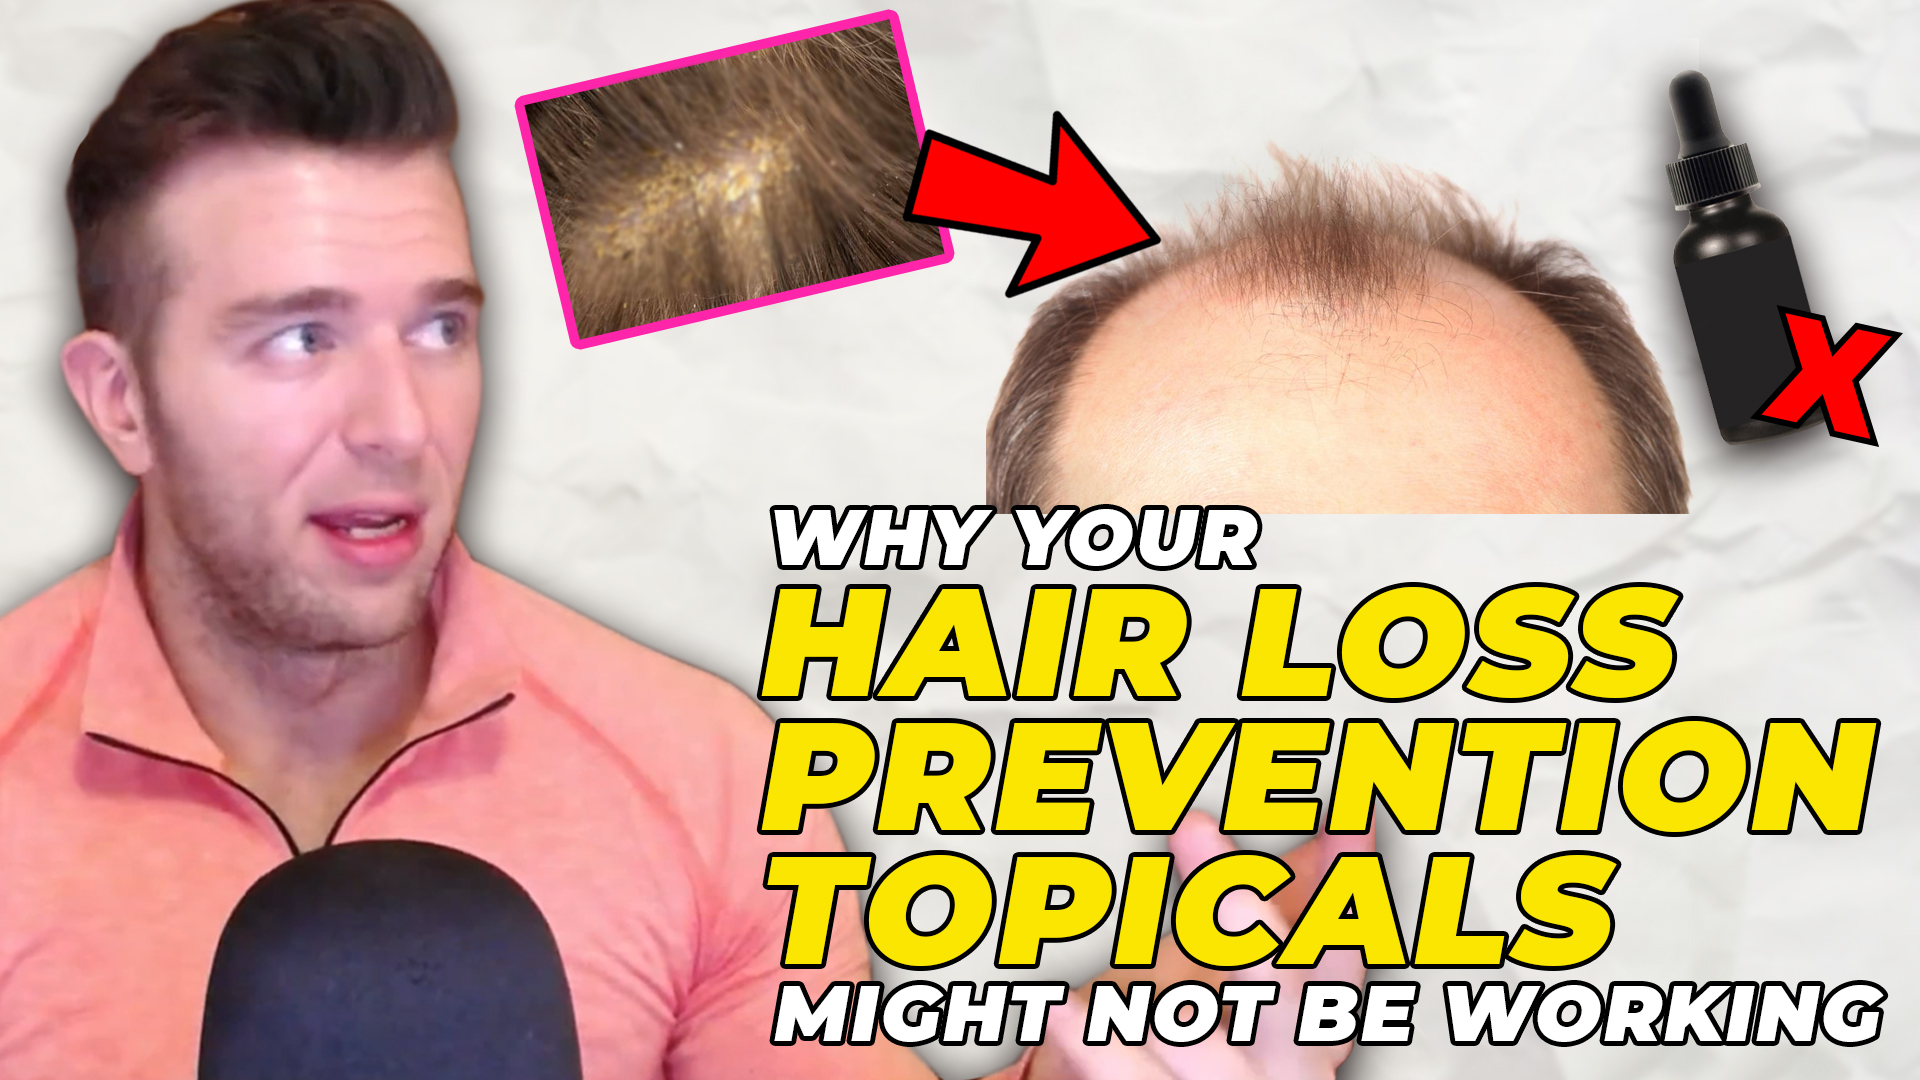 Derek from MorePlatesMoreDates.com explaining how topical hair loss treatments can't be absorbed properly if there is sebum accumulated on the scalp